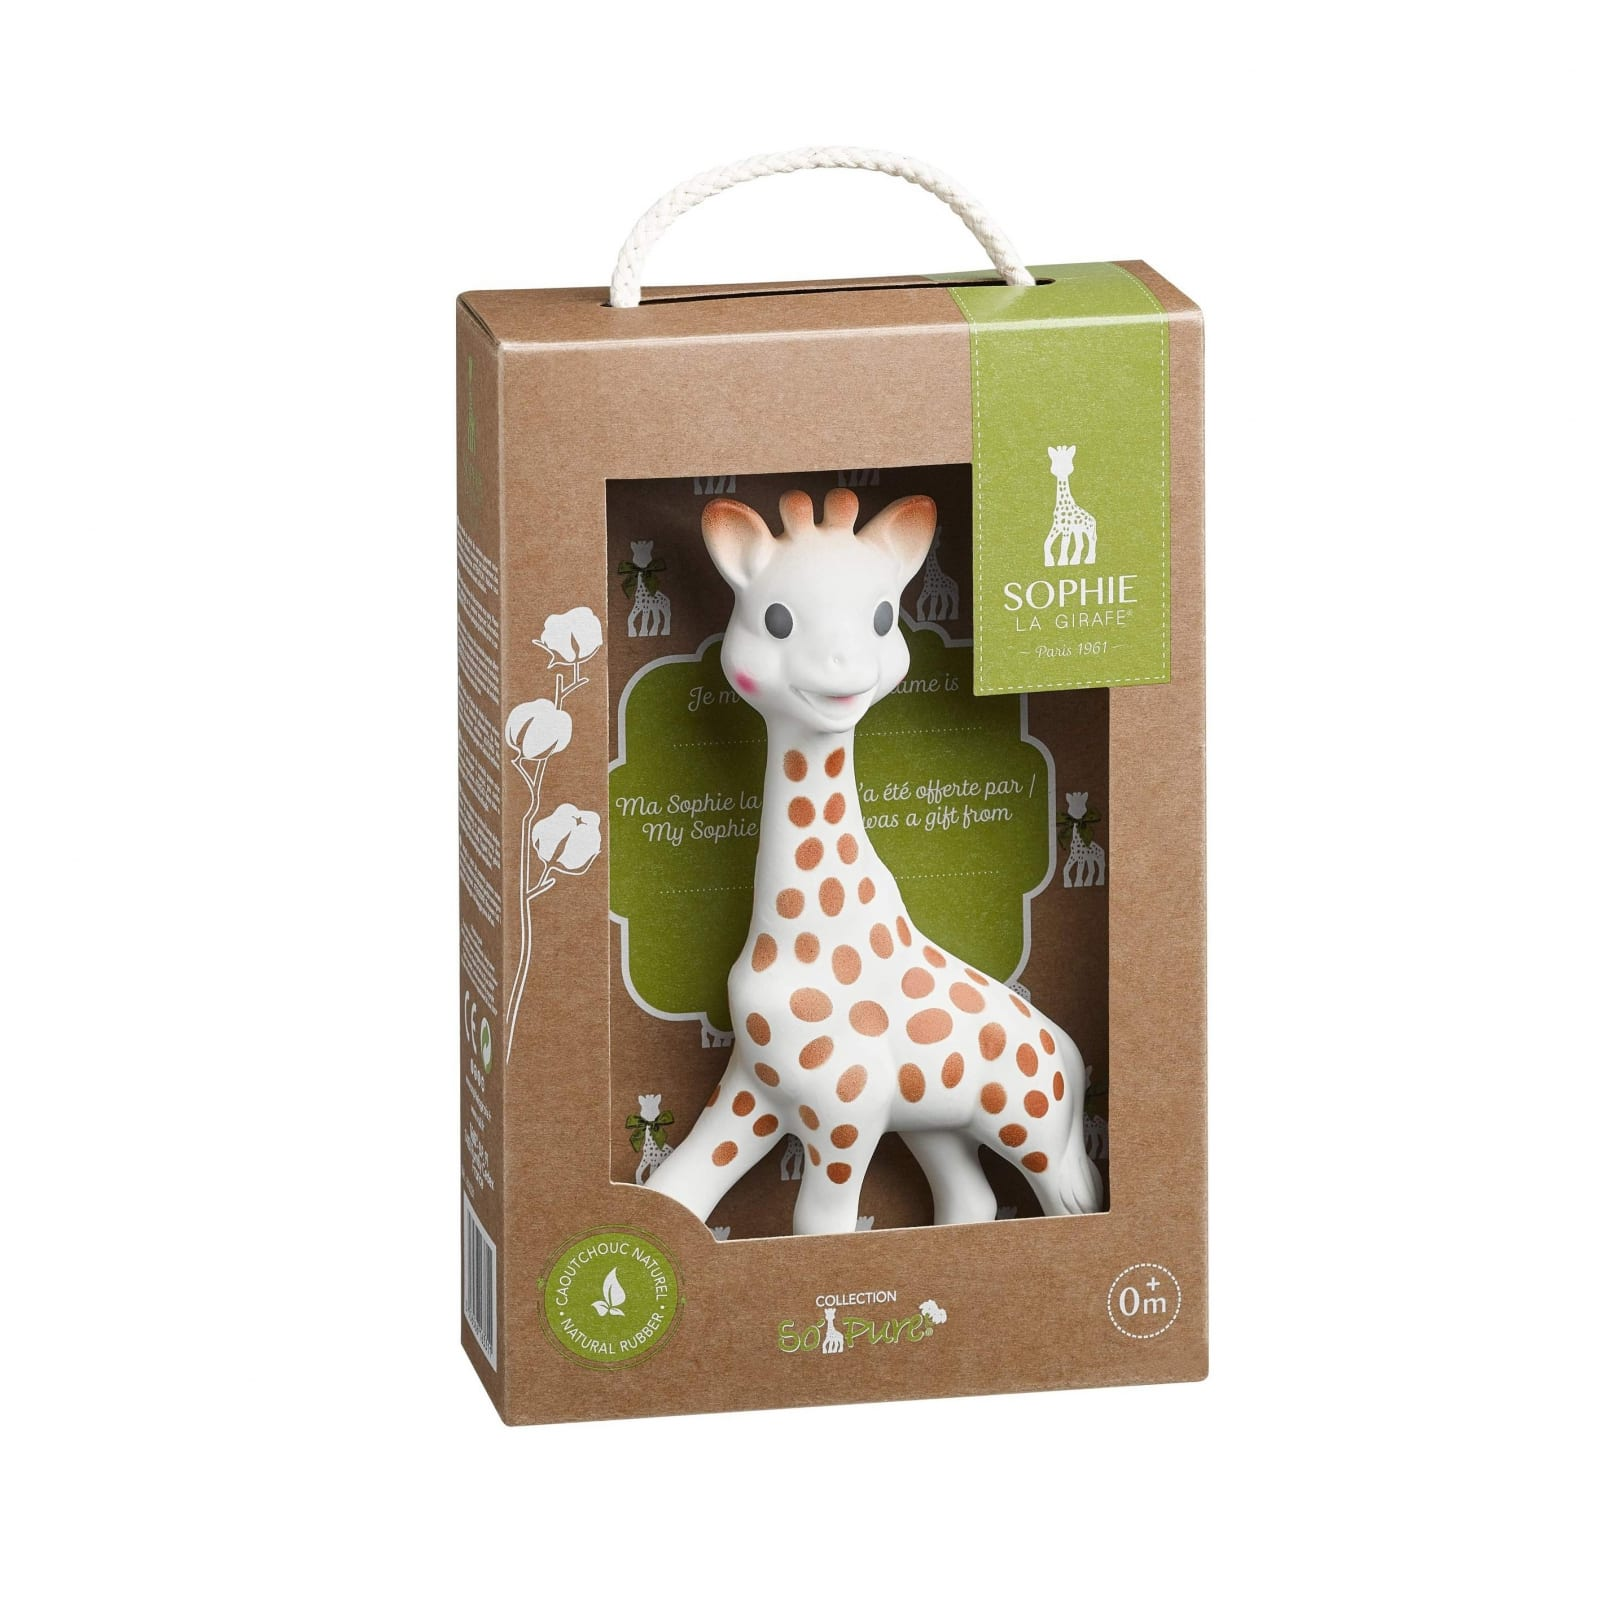 Sophie – So' Pure Sophie la girafe product image